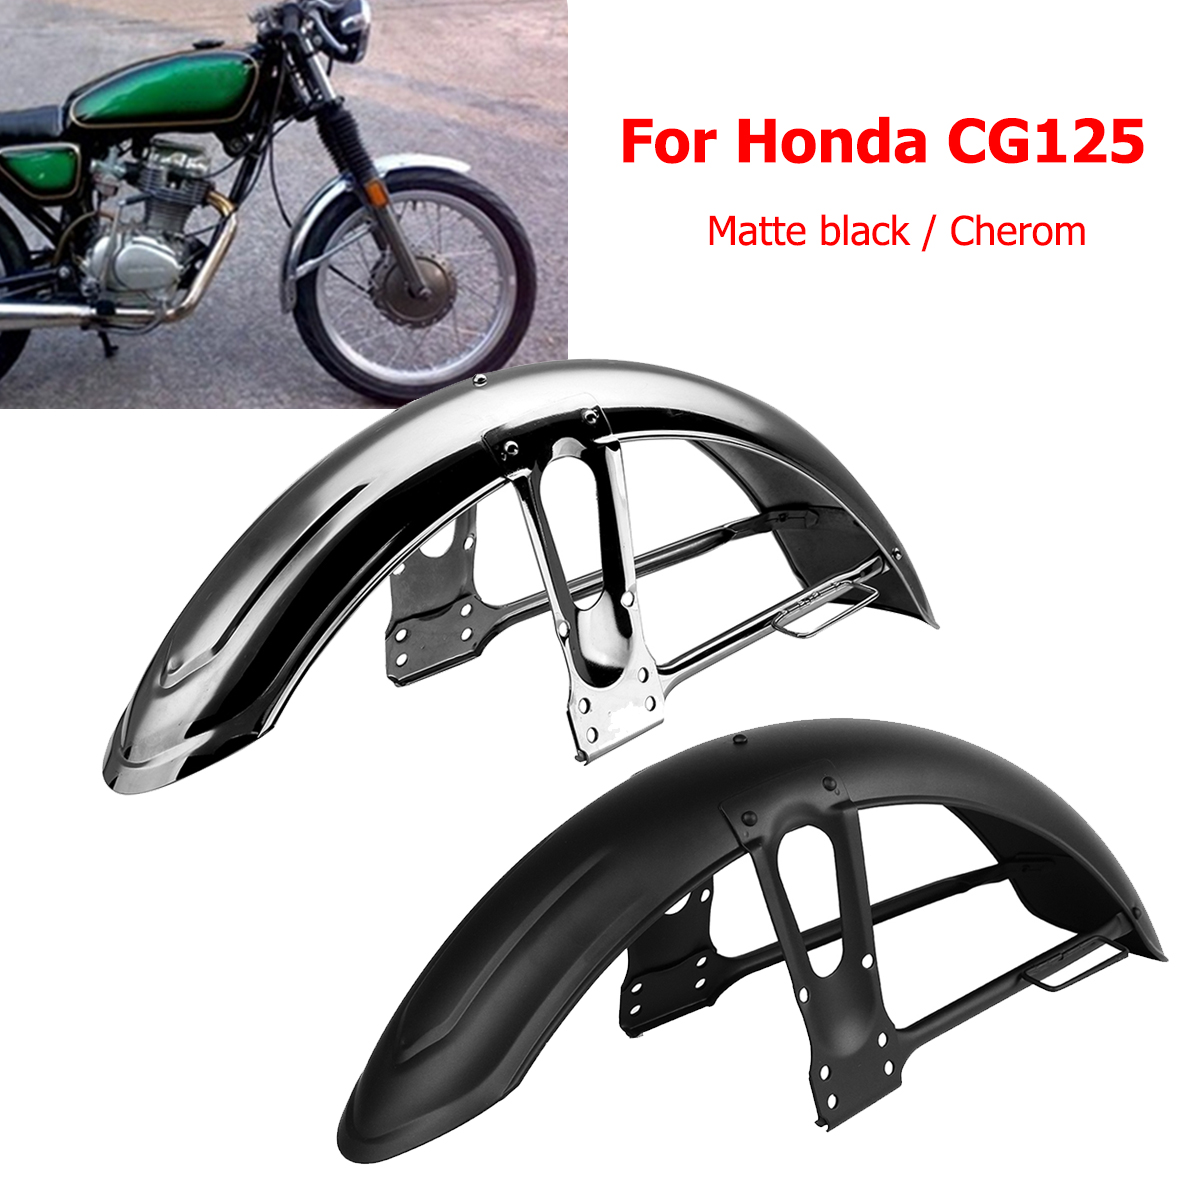 Motorcycle Front Mudflap Sand Splash Guard Mudguard Mud Flap For Fender For Honda CG125 Matte Black Chrome